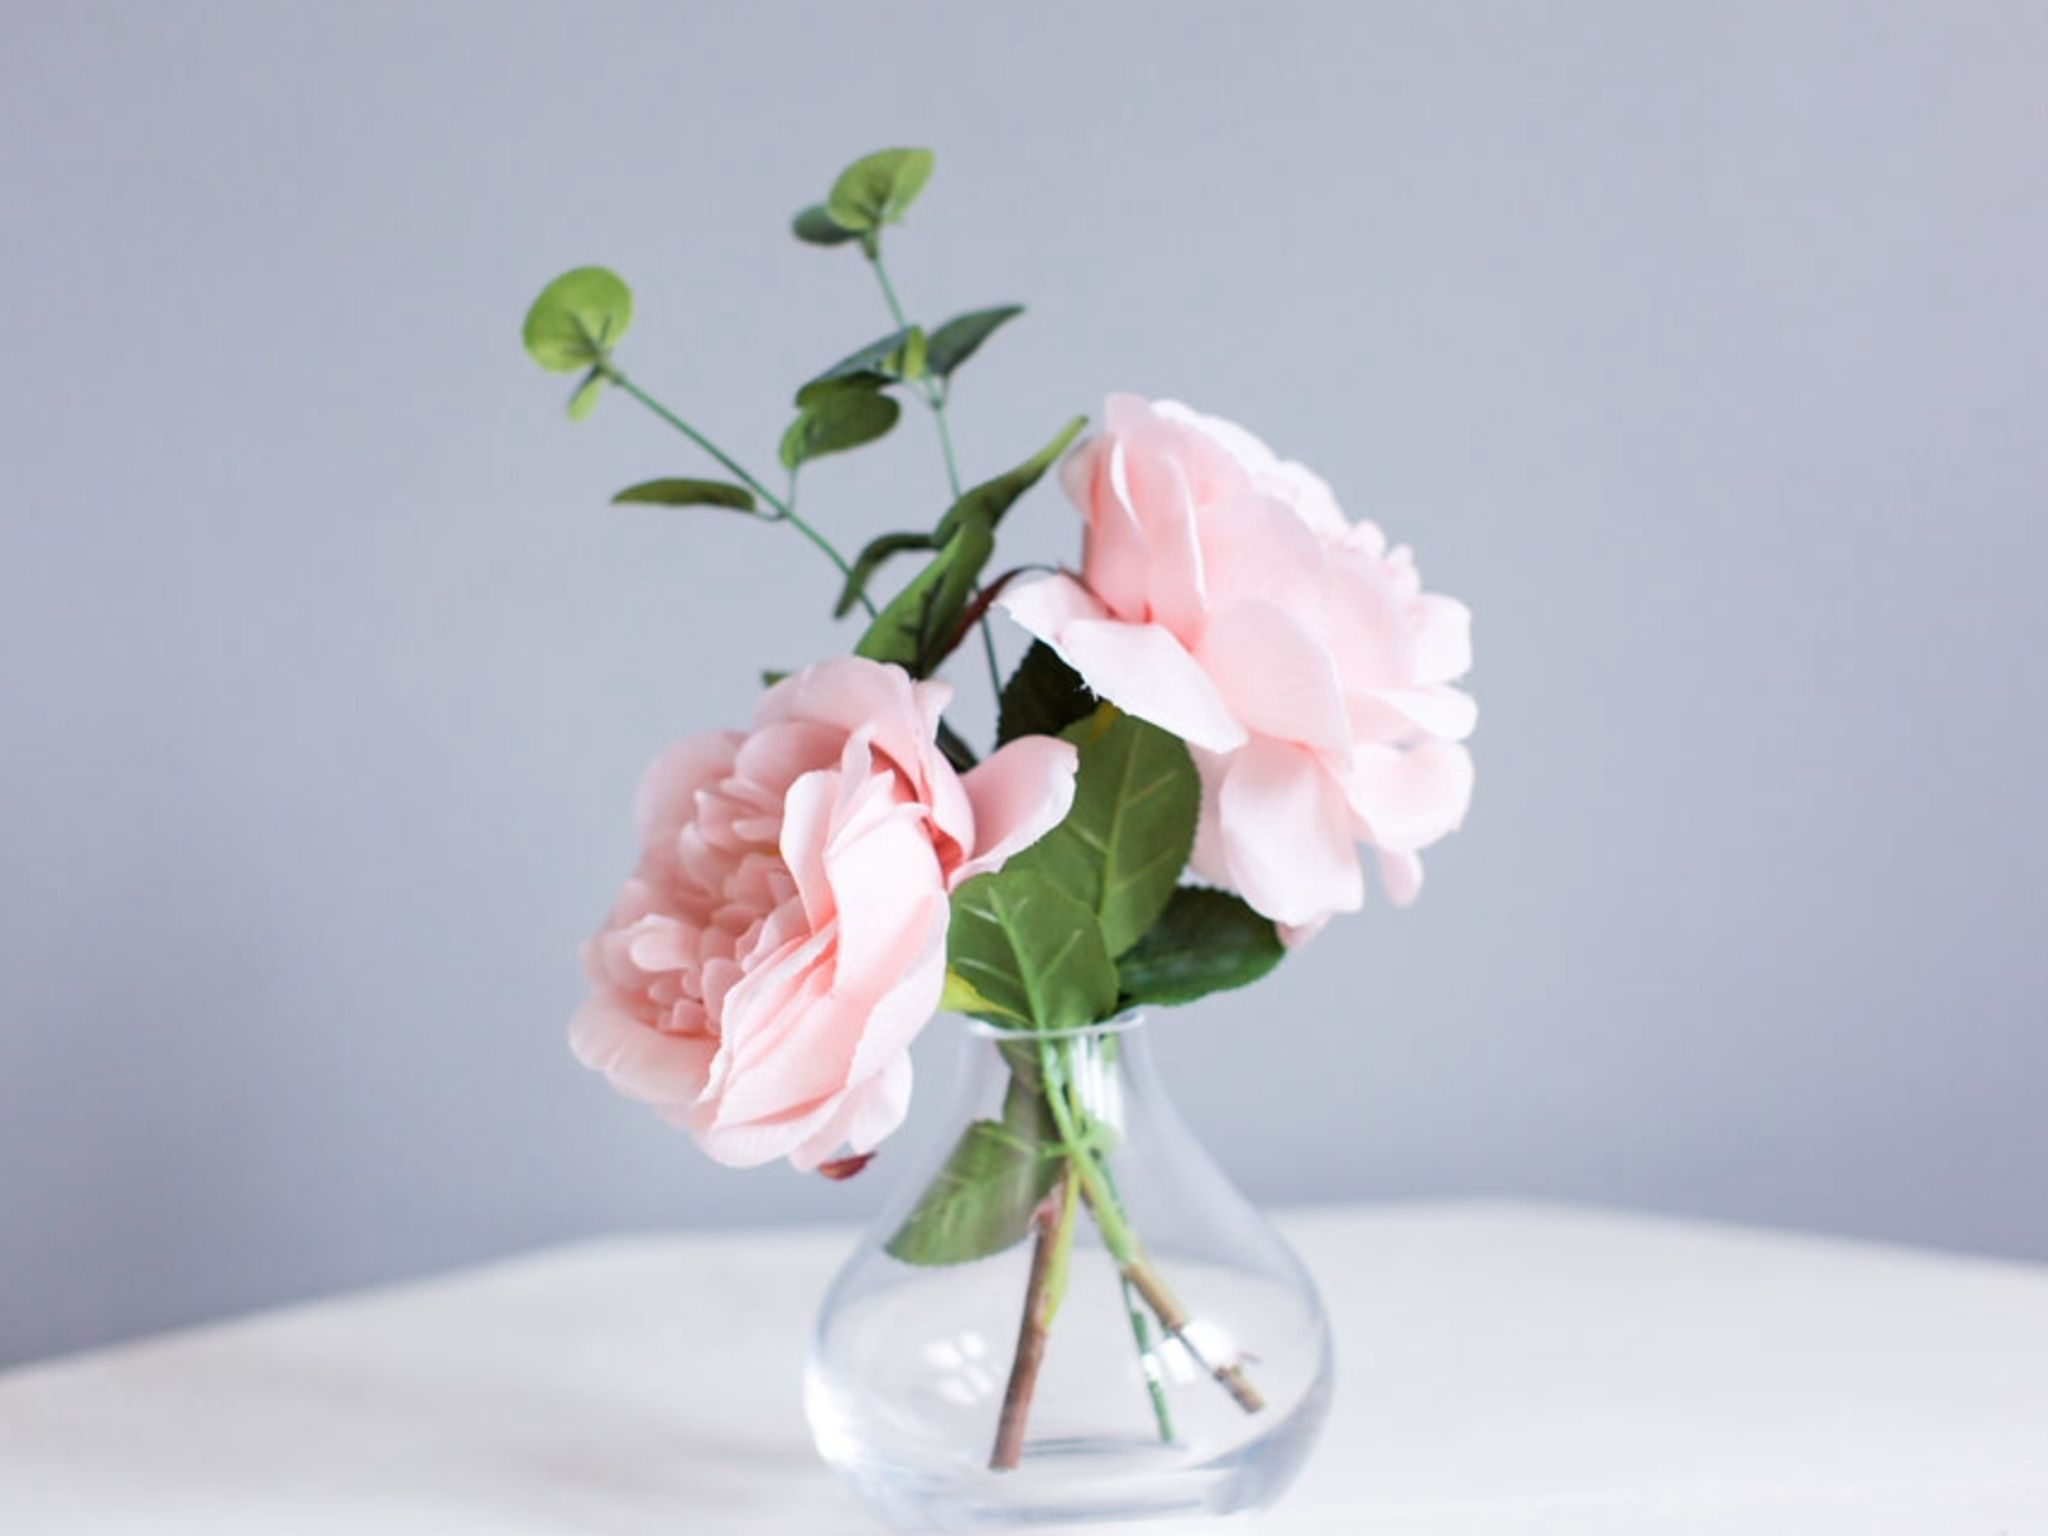 Best 25 bud vases ideas on pinterest small vases vase simple arrangements in bud vases using the same flowers as the reception arrangements reviewsmspy